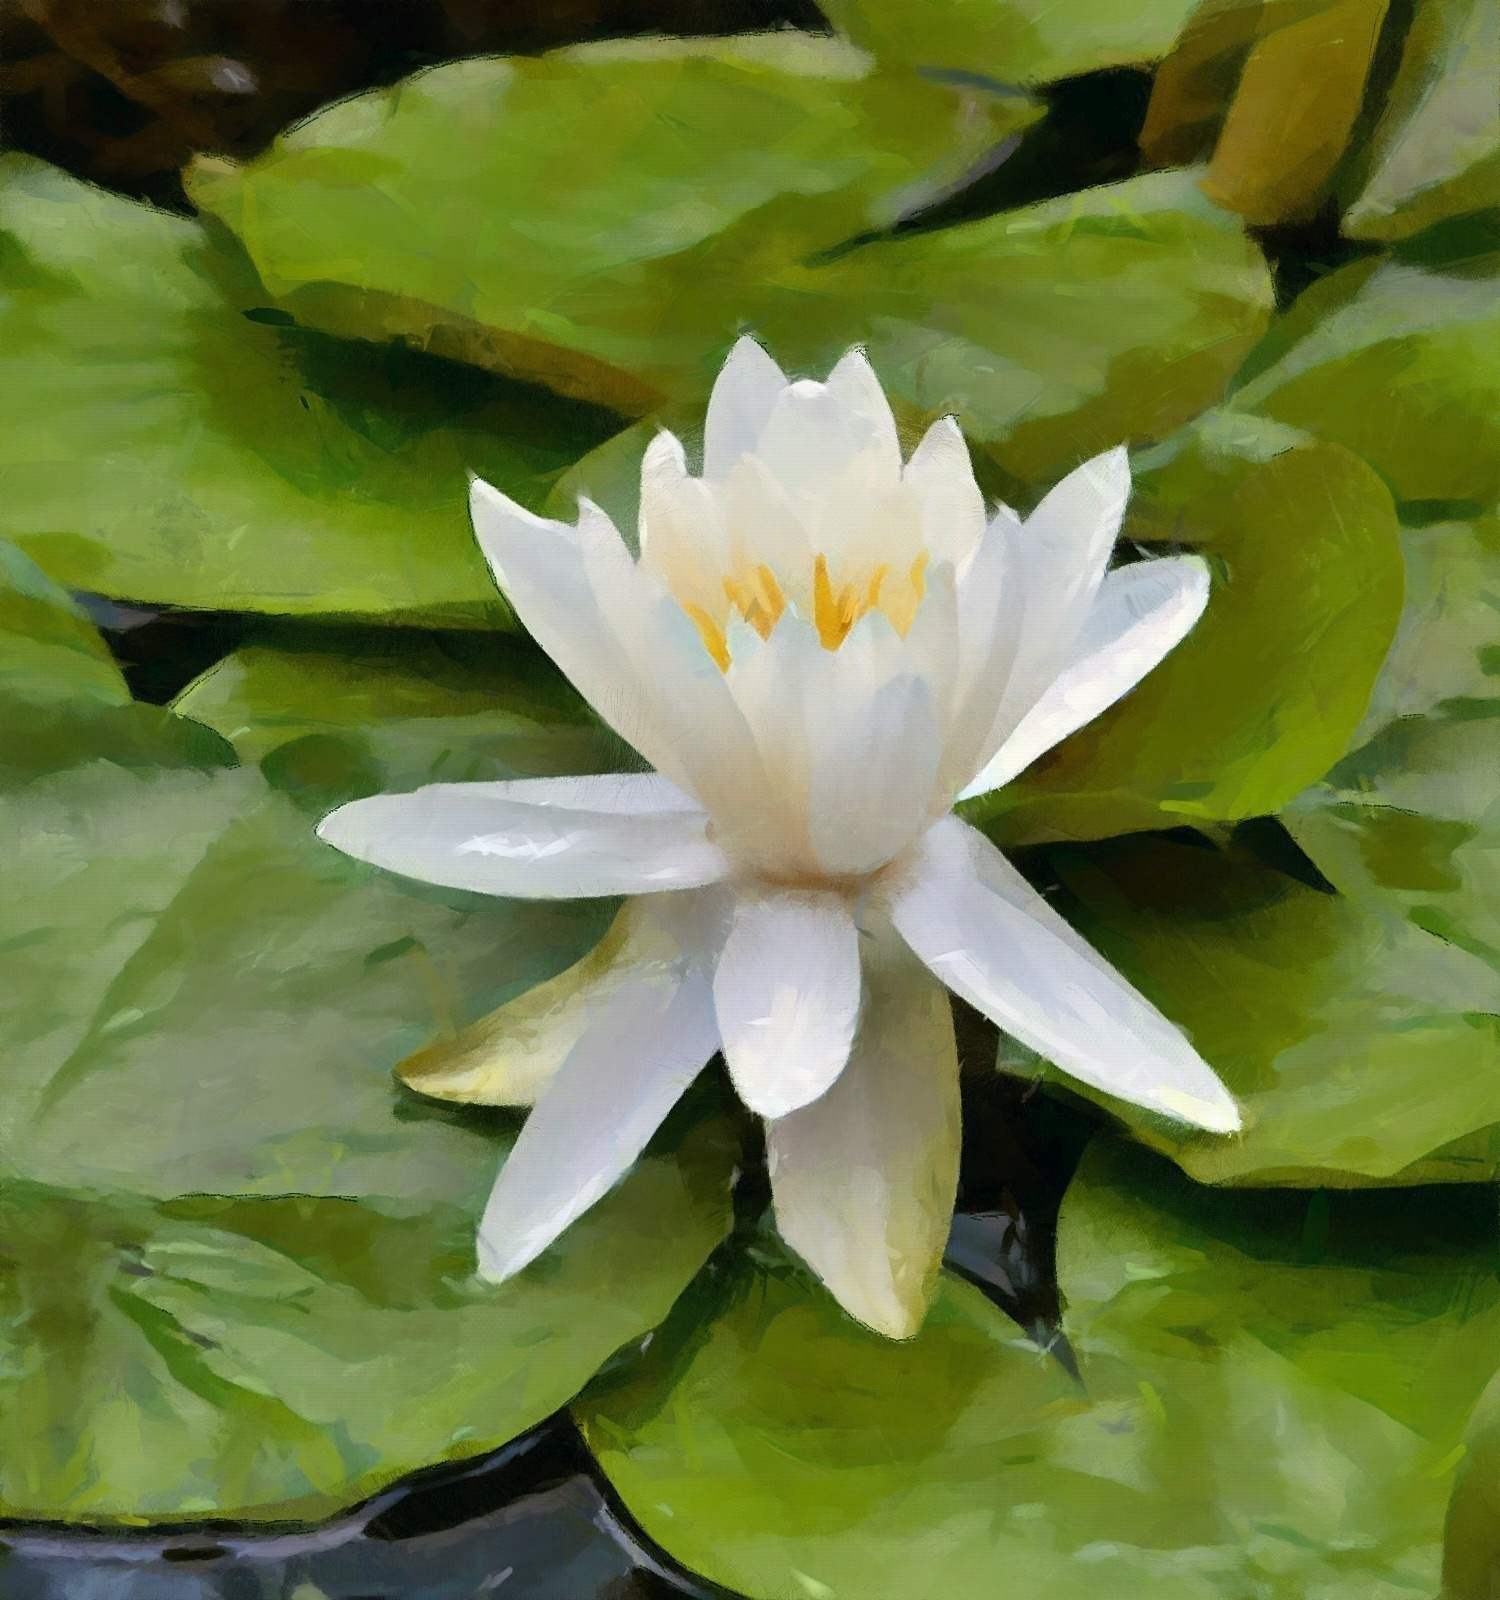 macbwaterlilly_2_DAP_!!_LIPOGg.jpg